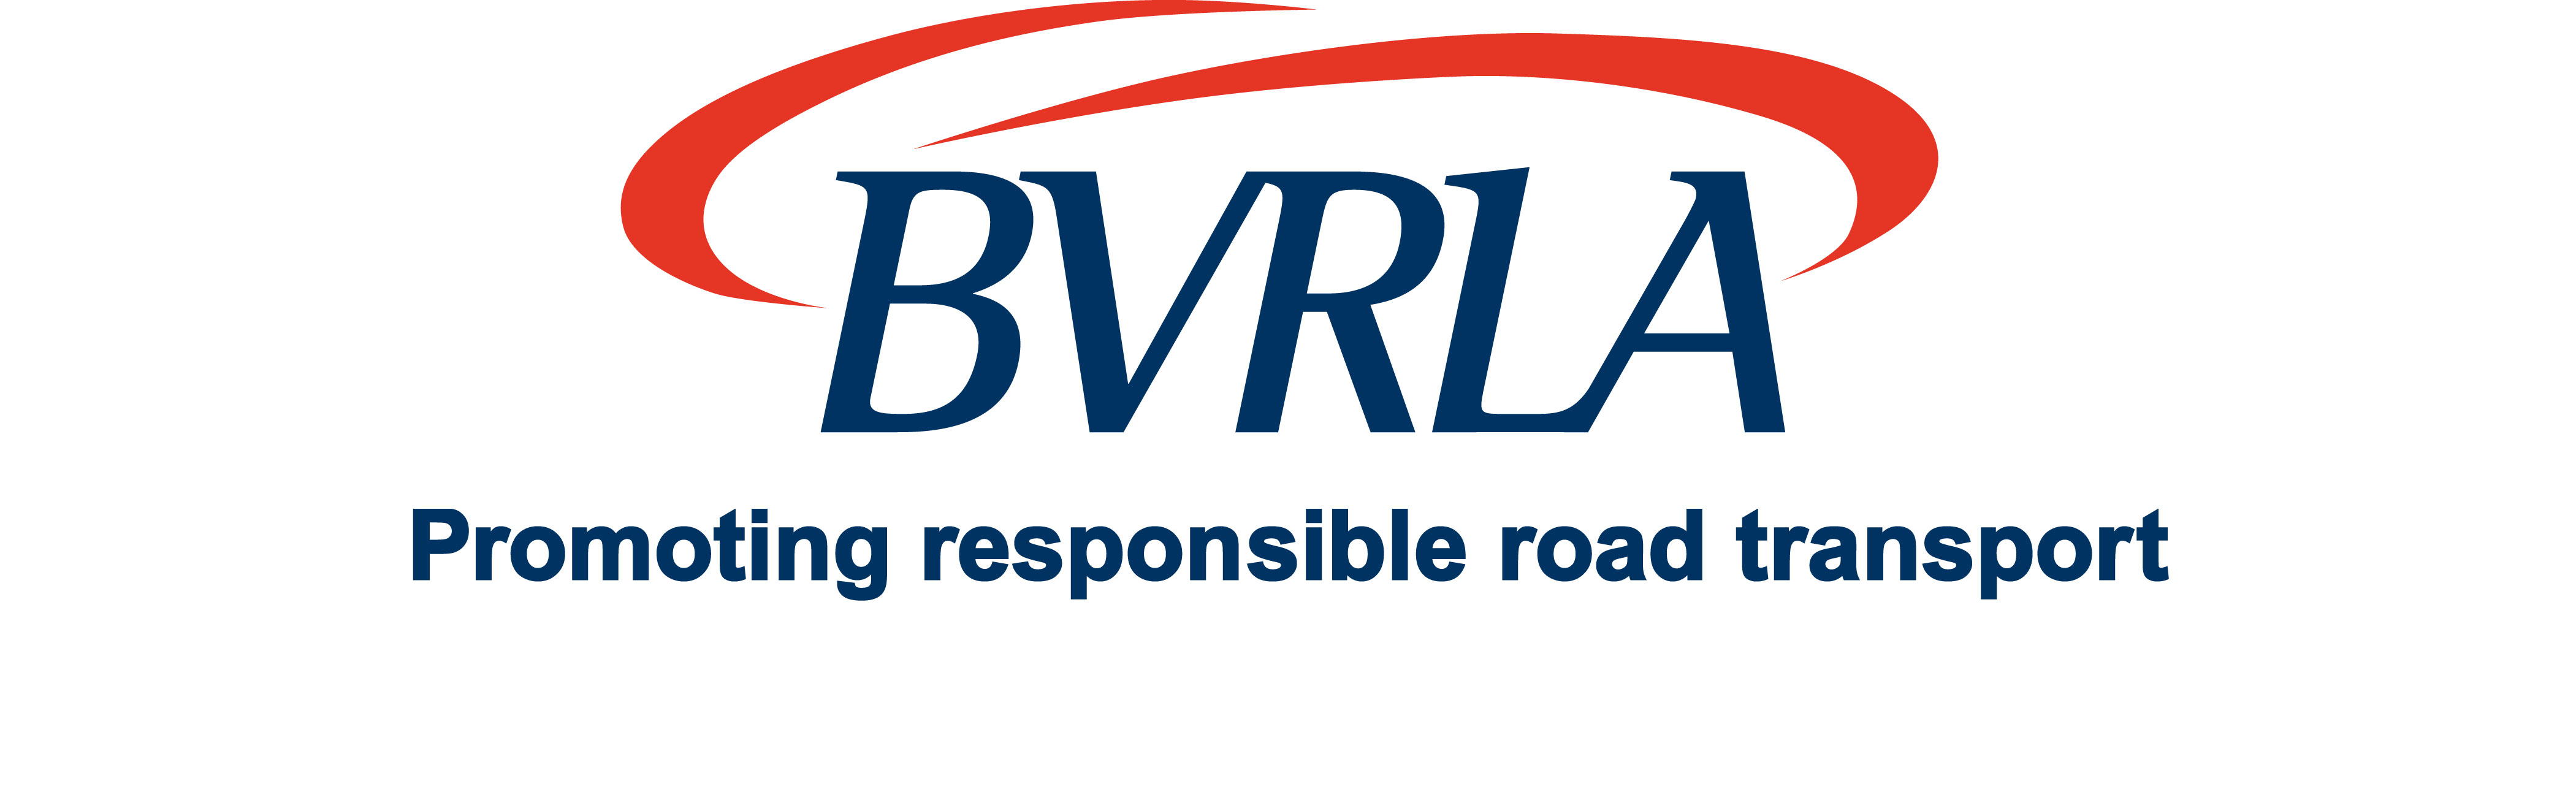 BVRLA-Promotingresponsibletransport